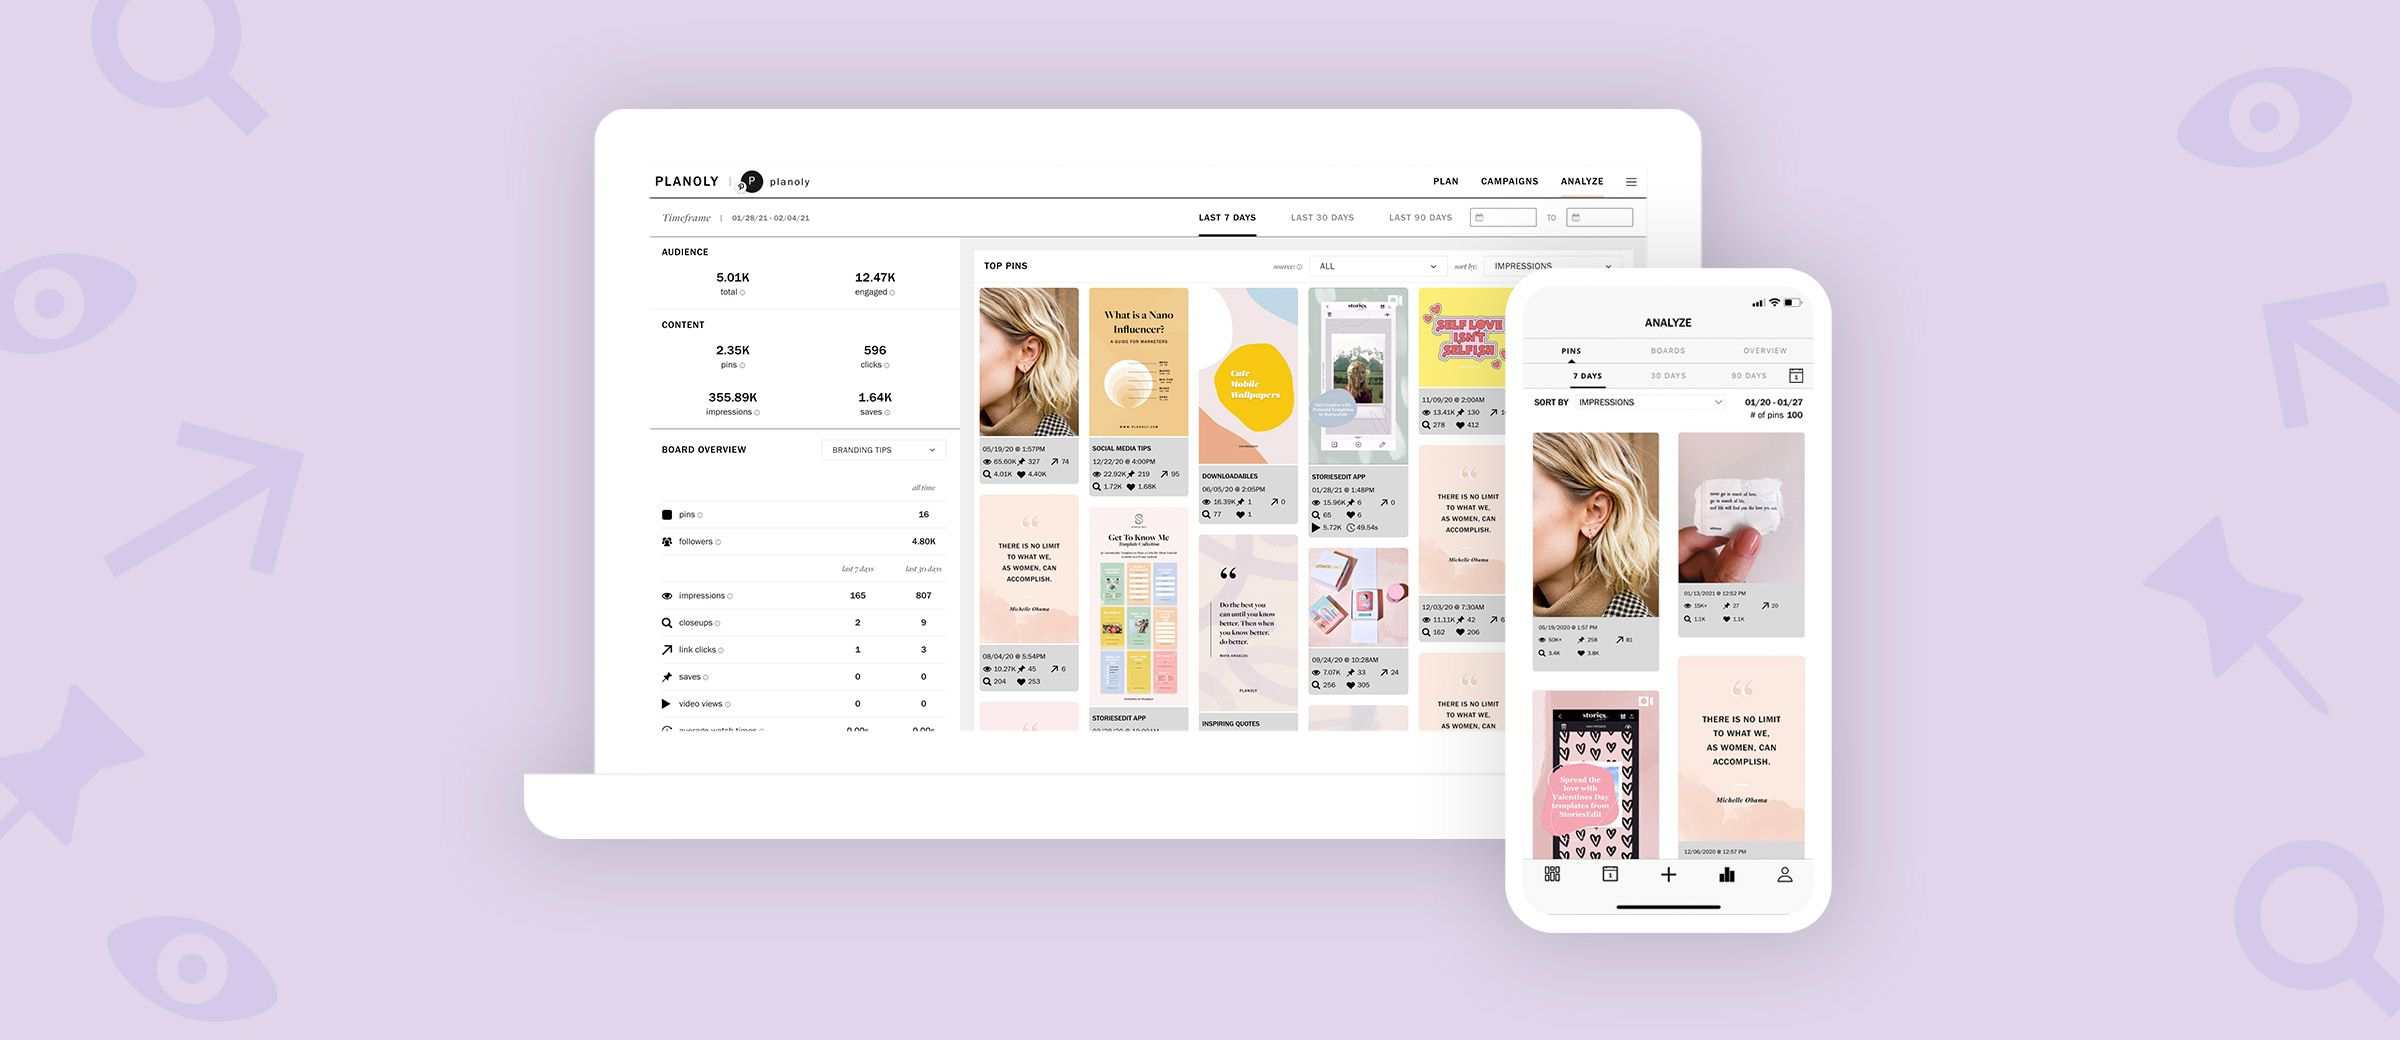 How to Use our Pin Planner's Pinterest Analytics Feature, by planoly